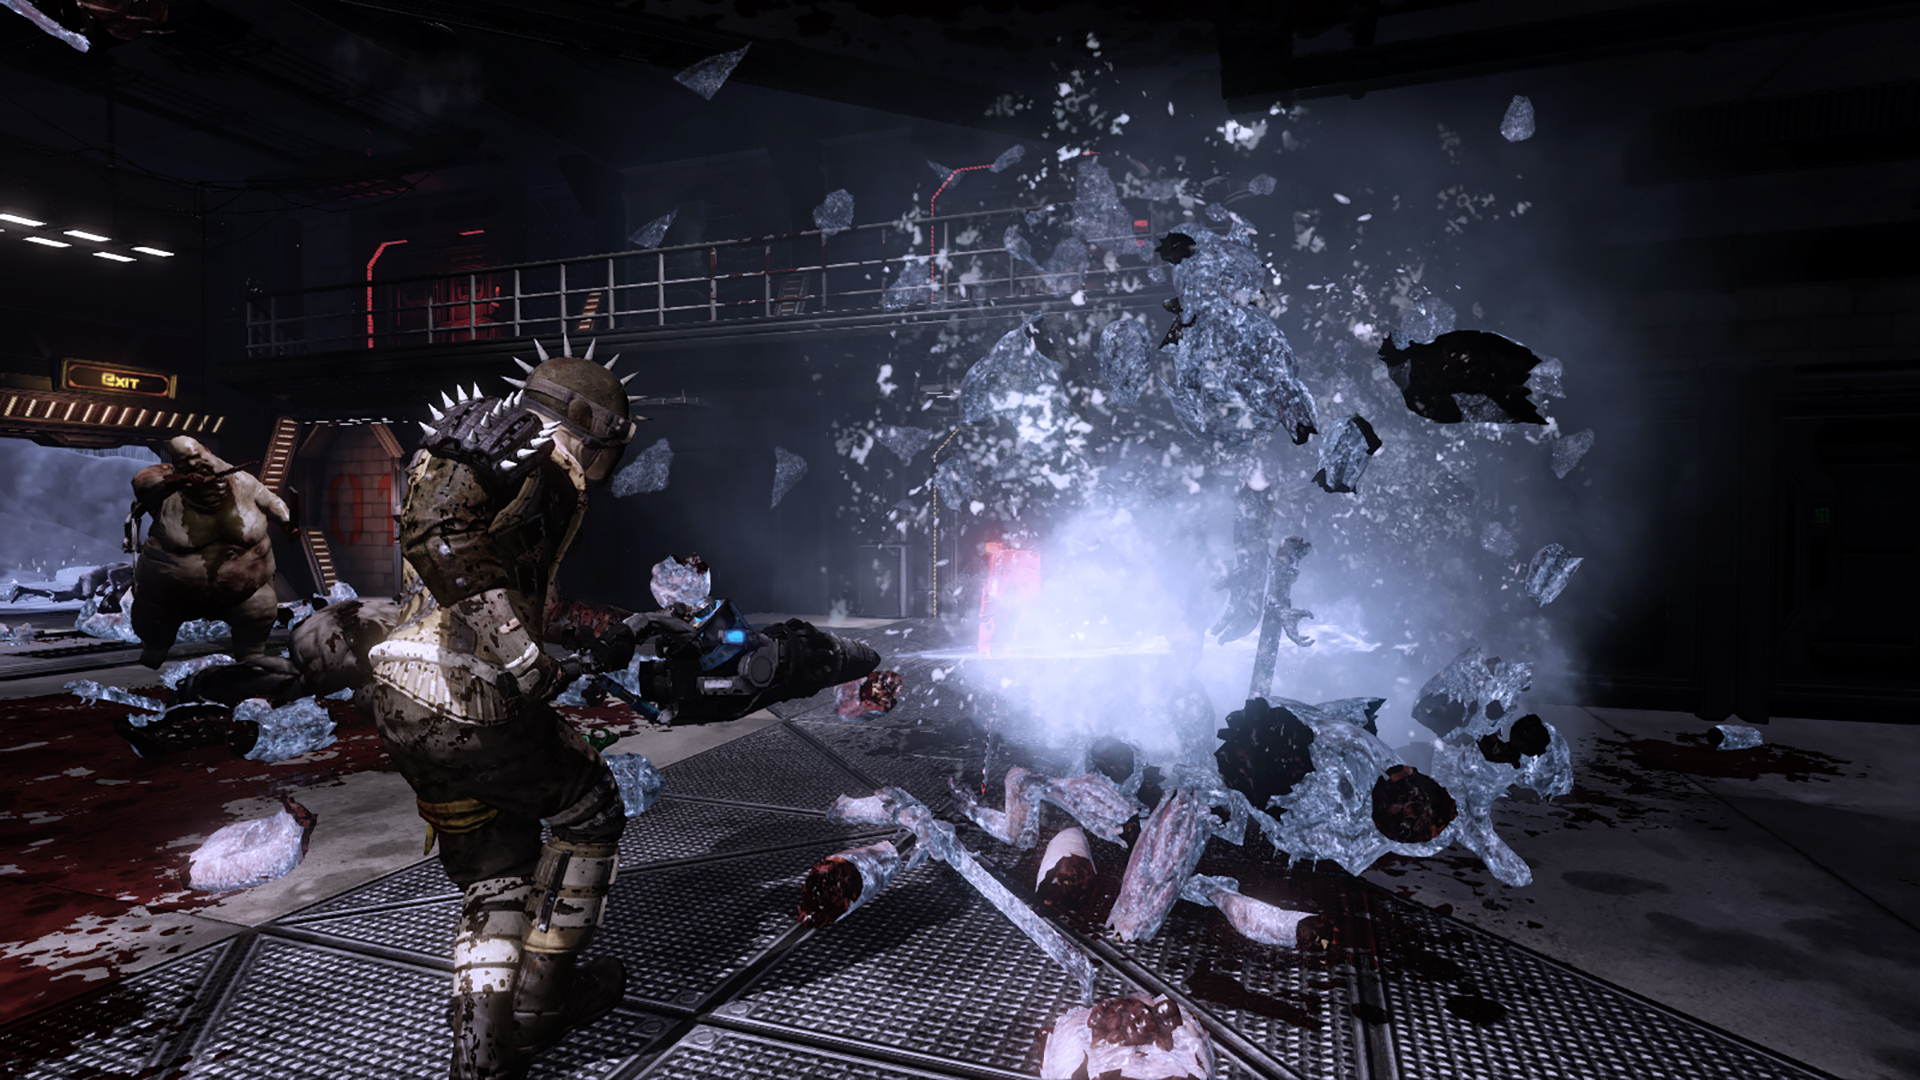 Xbox One Players Can Finally Join In The Killing Floor 2 Fun